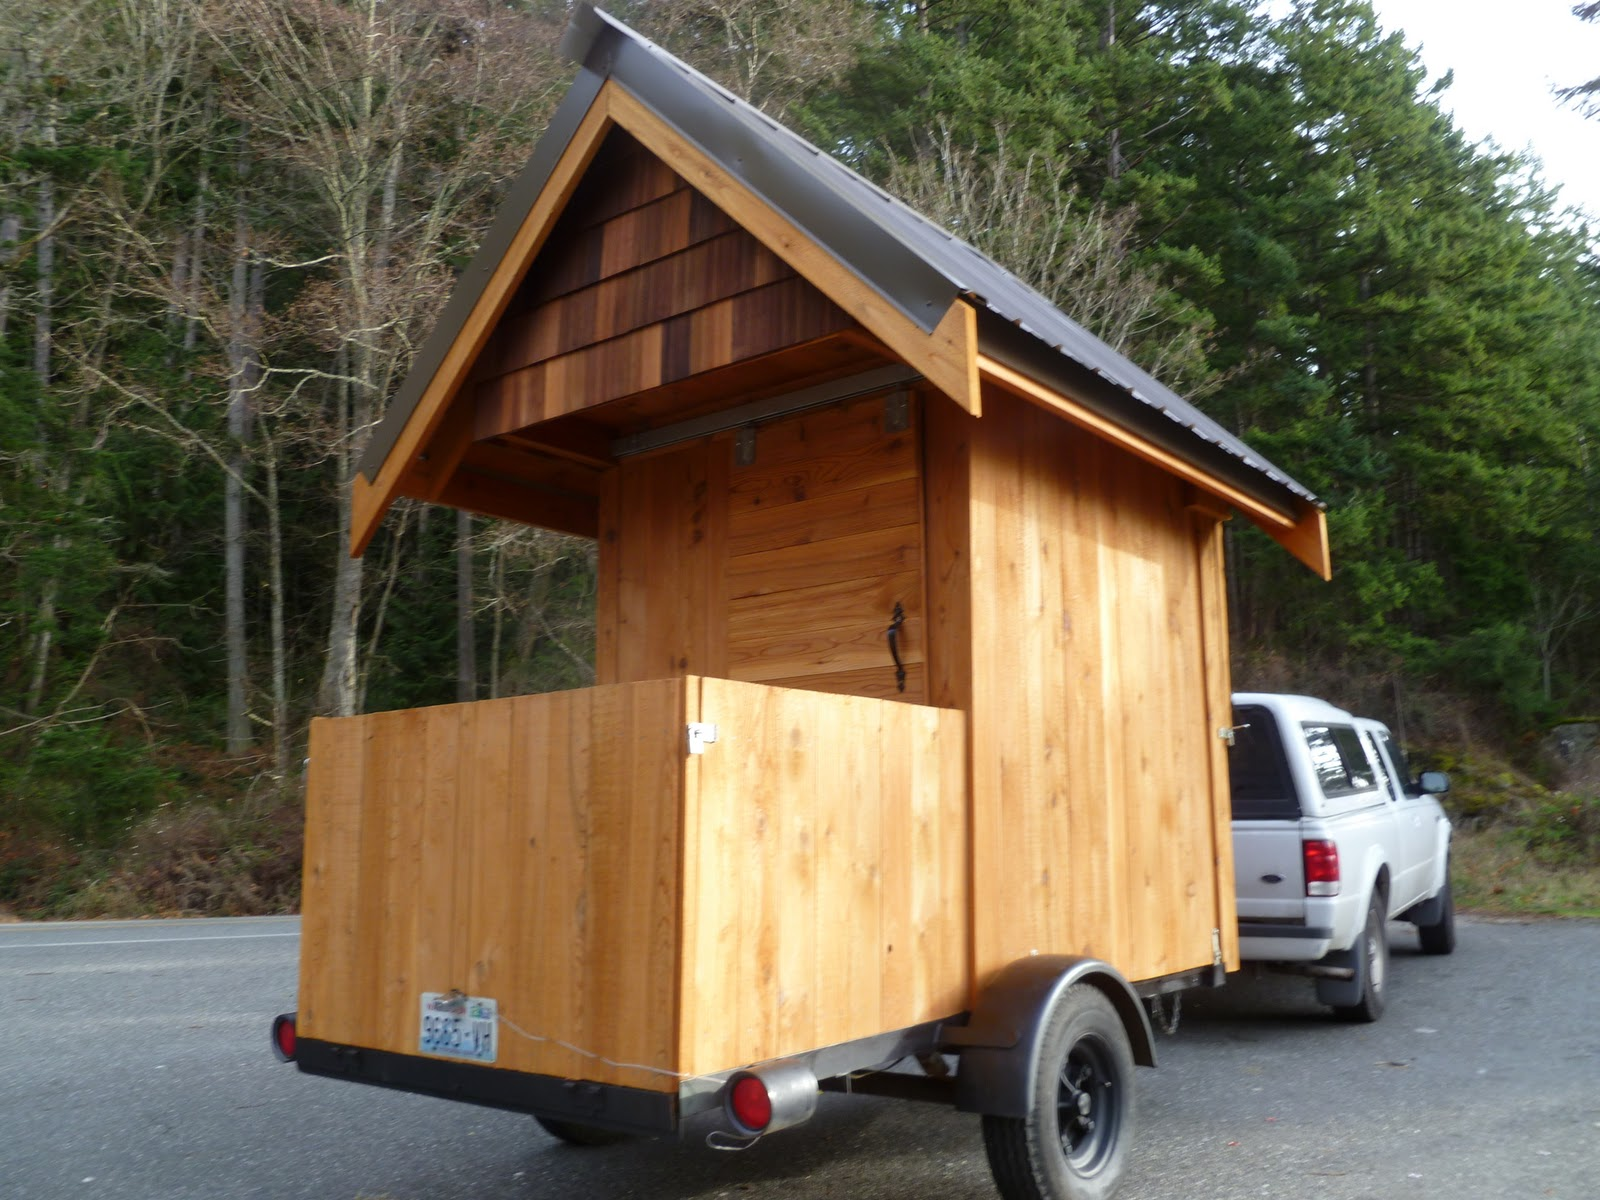 Astonishing Relaxshacks Com Eli Curtis Tiny Cabin On Wheels A Micro Getaway Largest Home Design Picture Inspirations Pitcheantrous